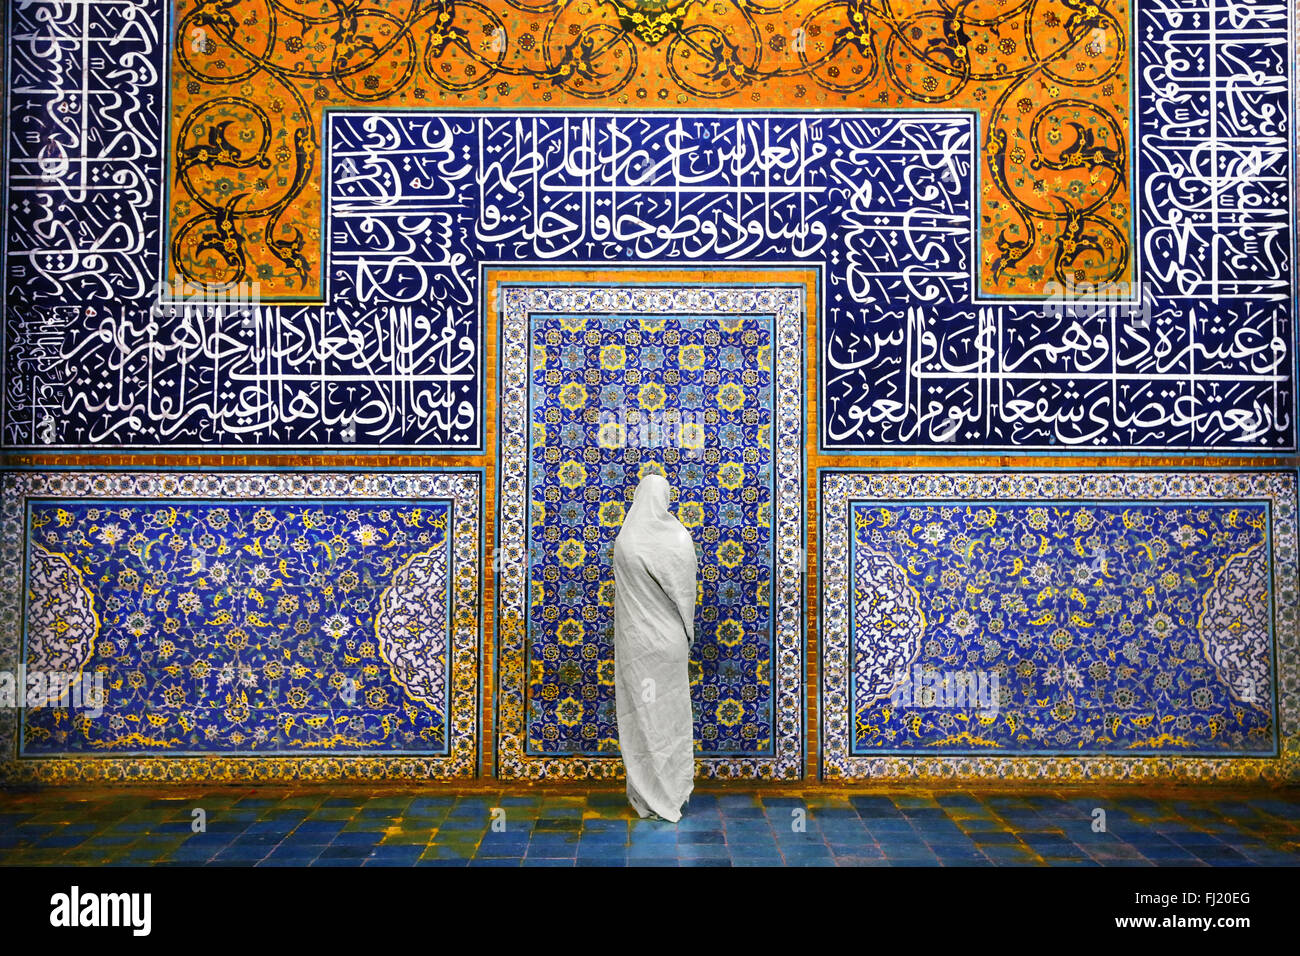 Veiled Muslim woman and architecture of Sheikh Lotfollah Mosque, Isfahan - Stock Image